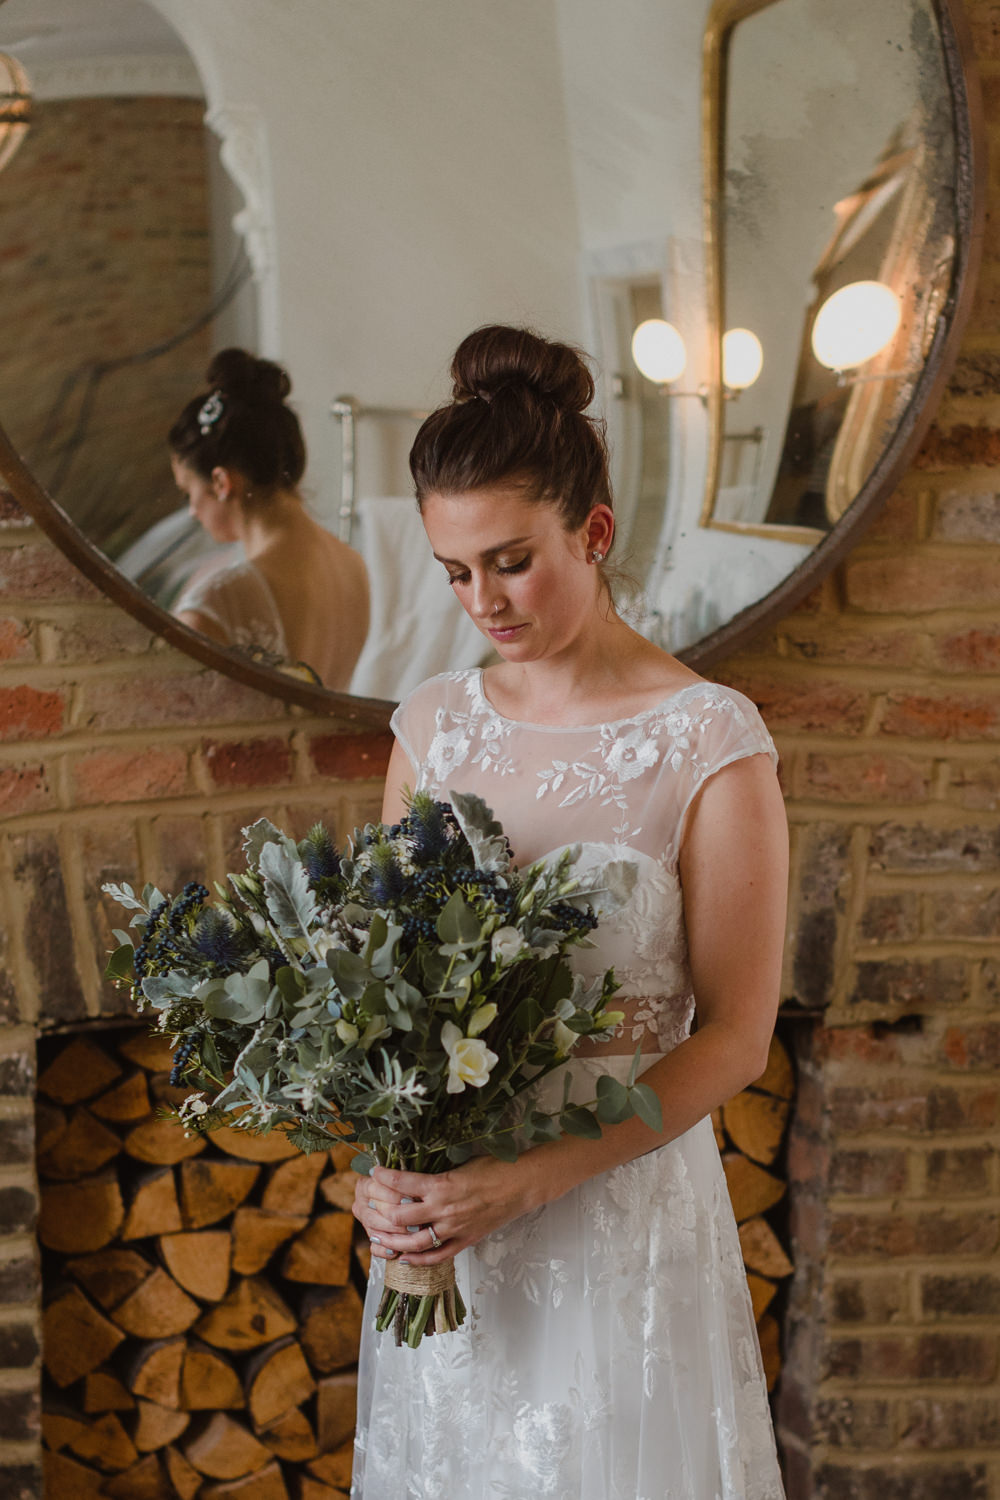 Bride Bridal Bouquet Flowers Greenery Foliage Thistles Berries Asylum London Wedding Emma Gates Photography